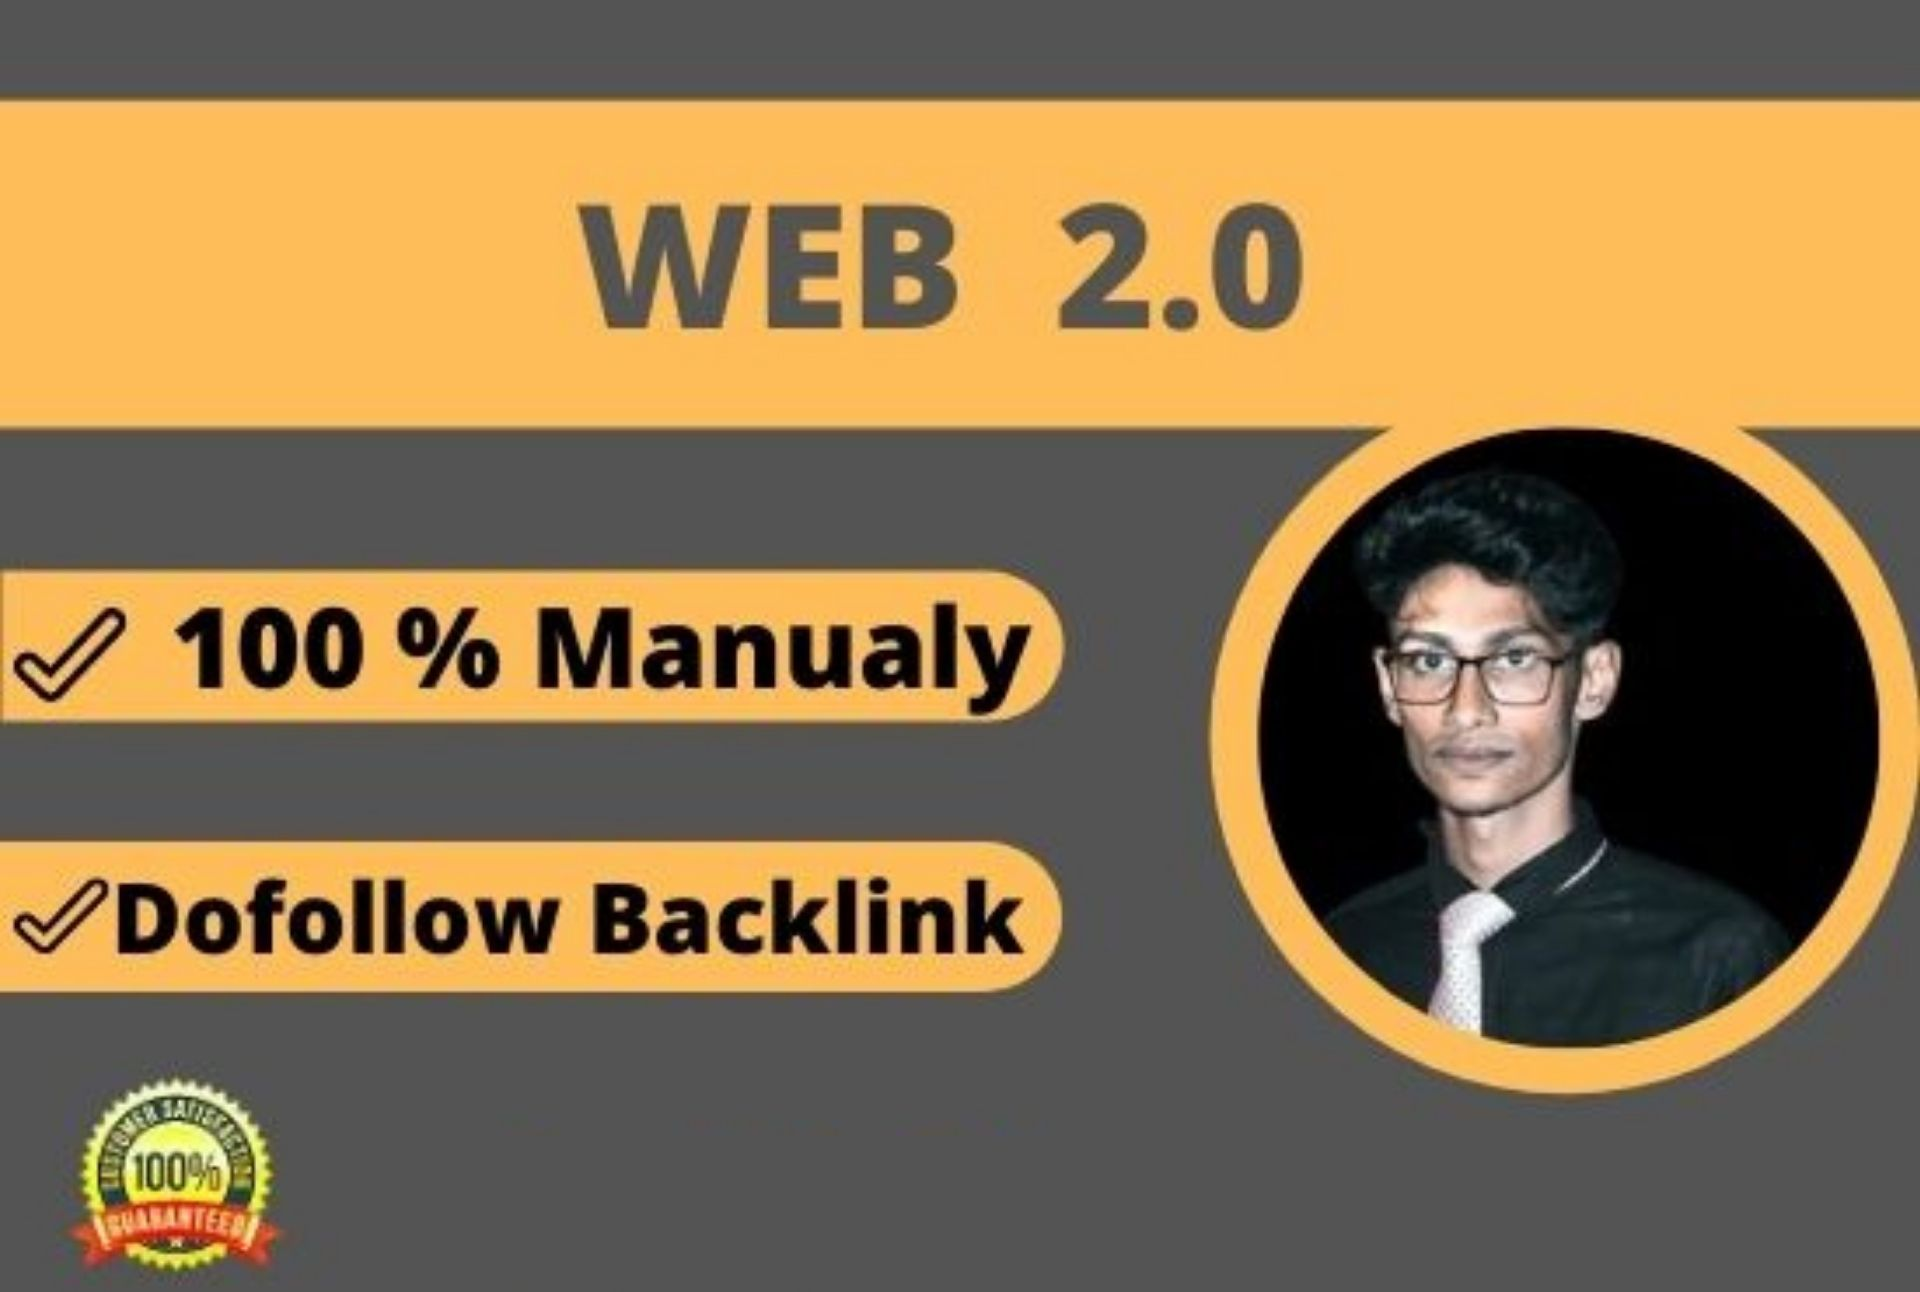 I will build 5 web 2.0 backlinks